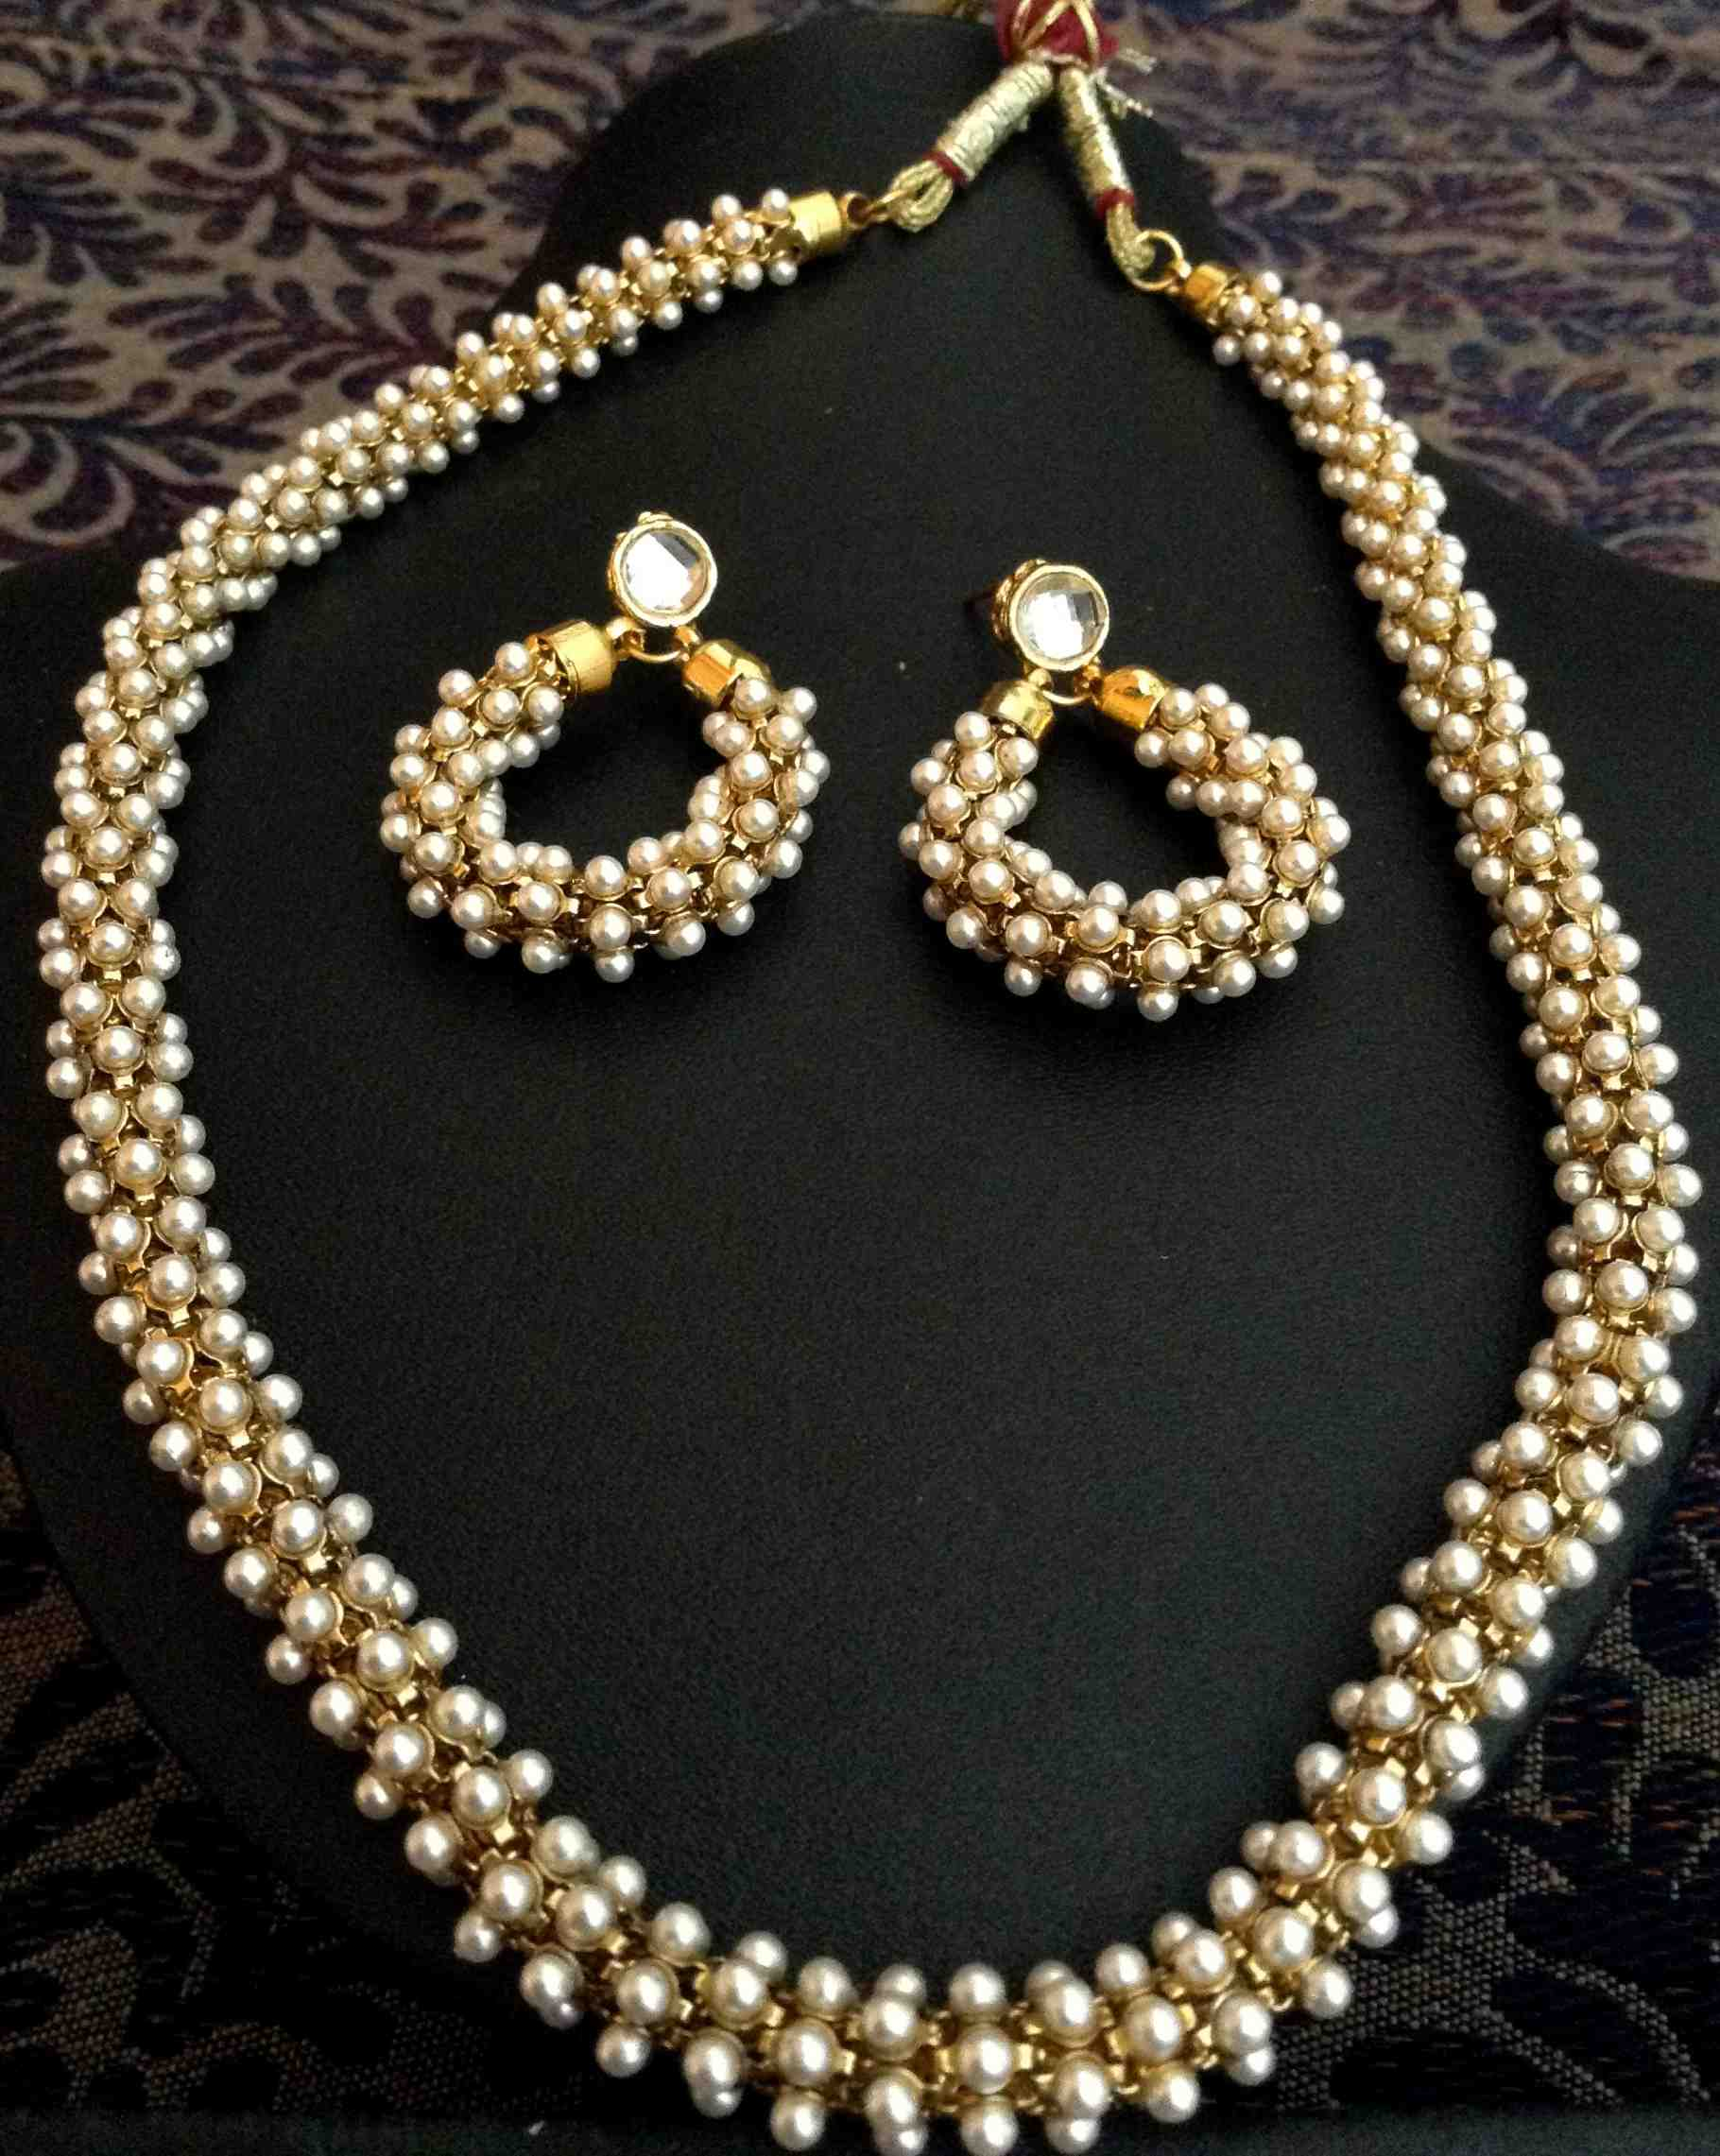 e11f6cf668a Beautiful Chandni Pearls Woven in Golden Metal Indian Pearl Necklace Set  d20 - Dancing Girl - 166055